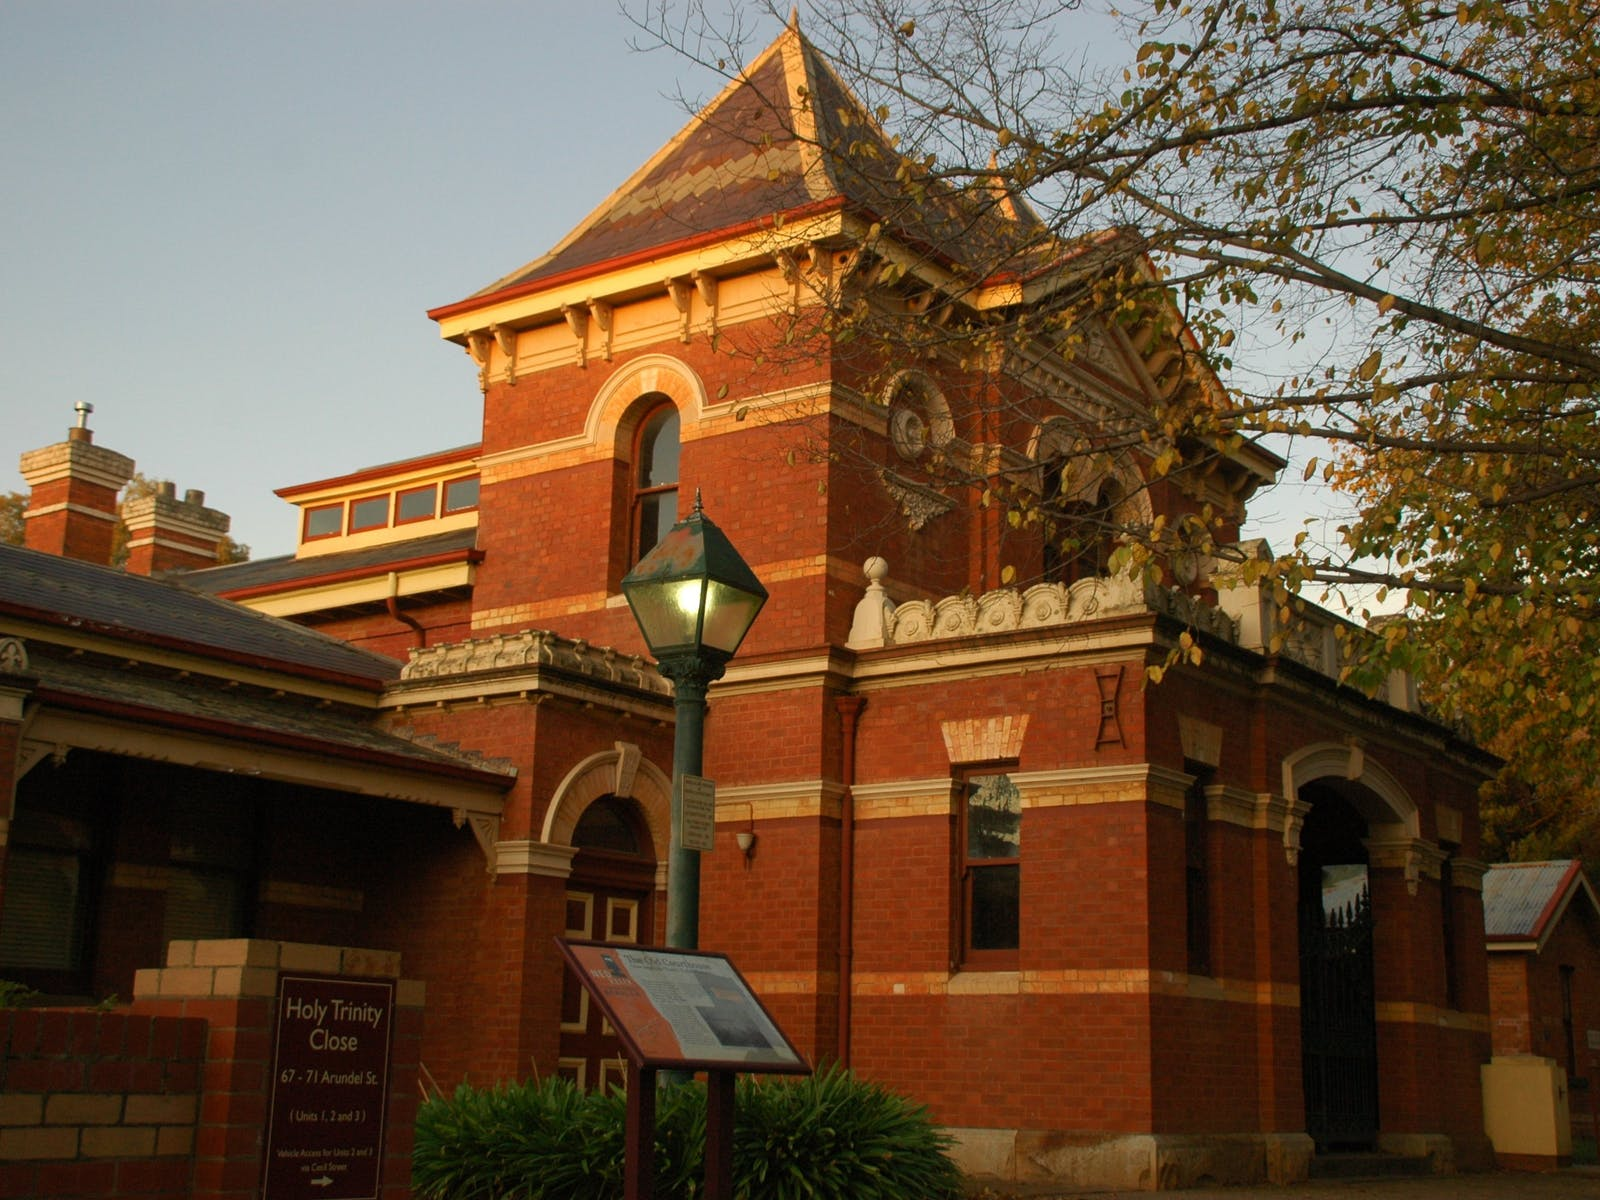 Benalla Courthouse